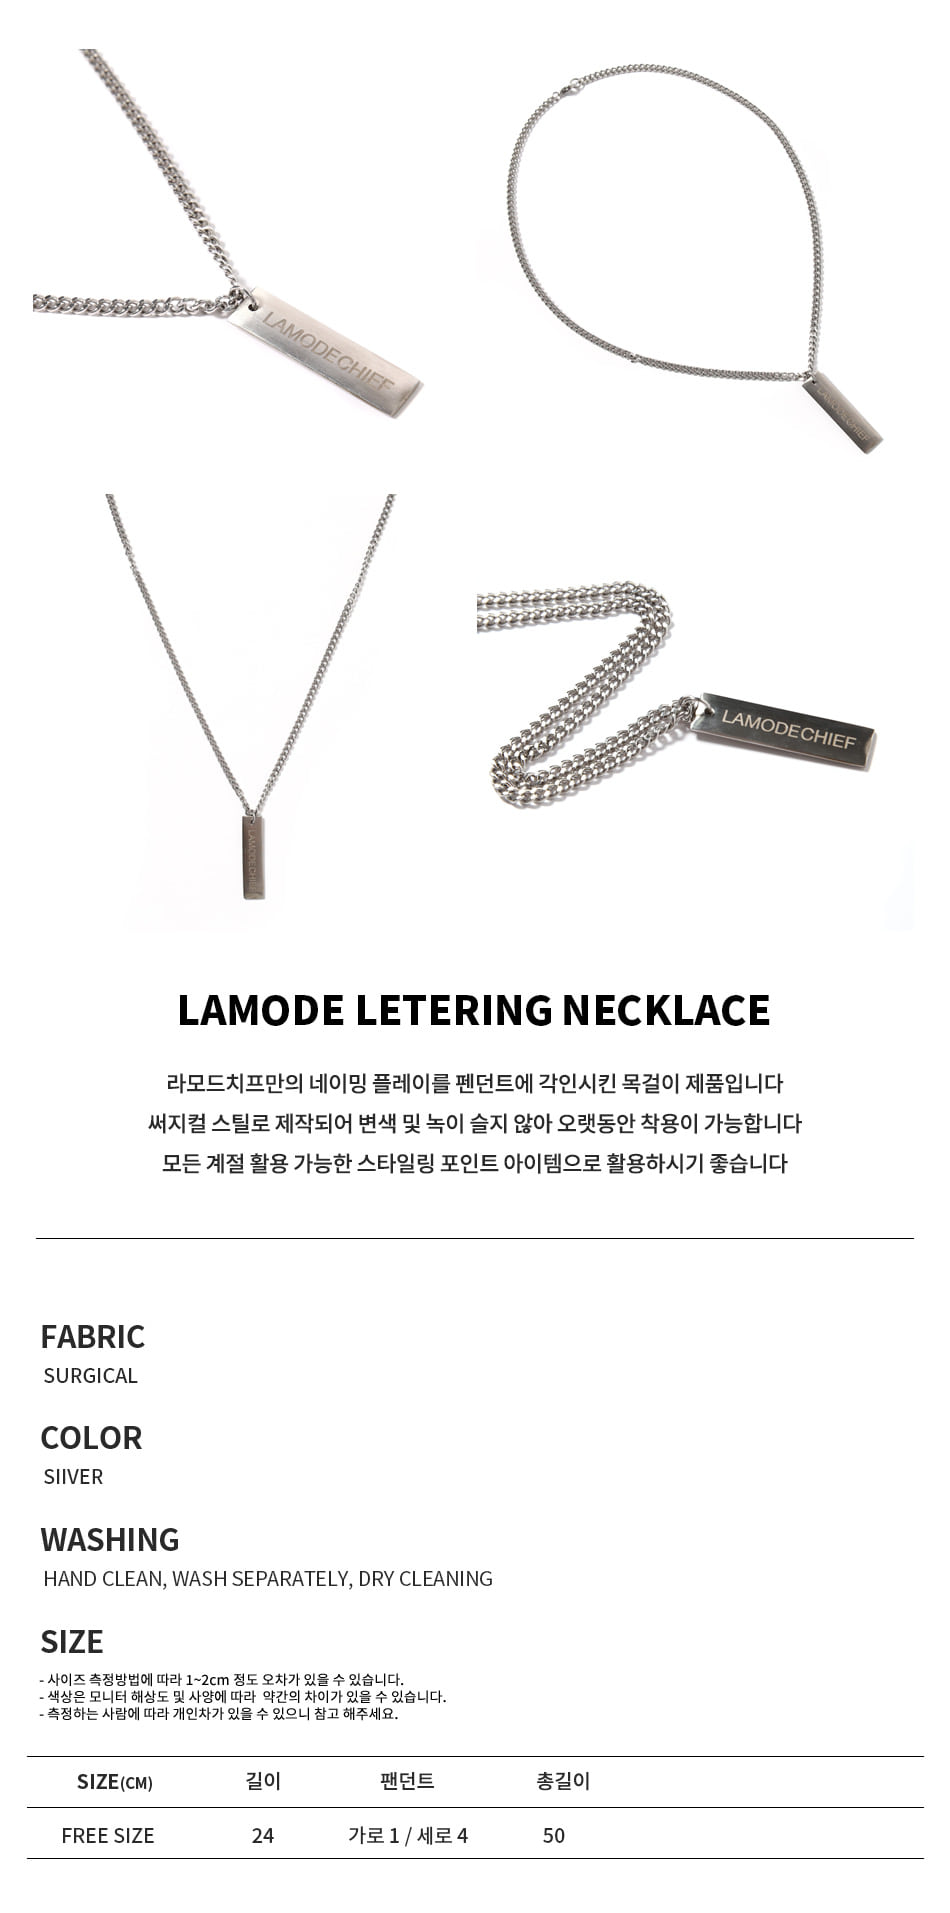 LAMODE LETTERING NECKLACE